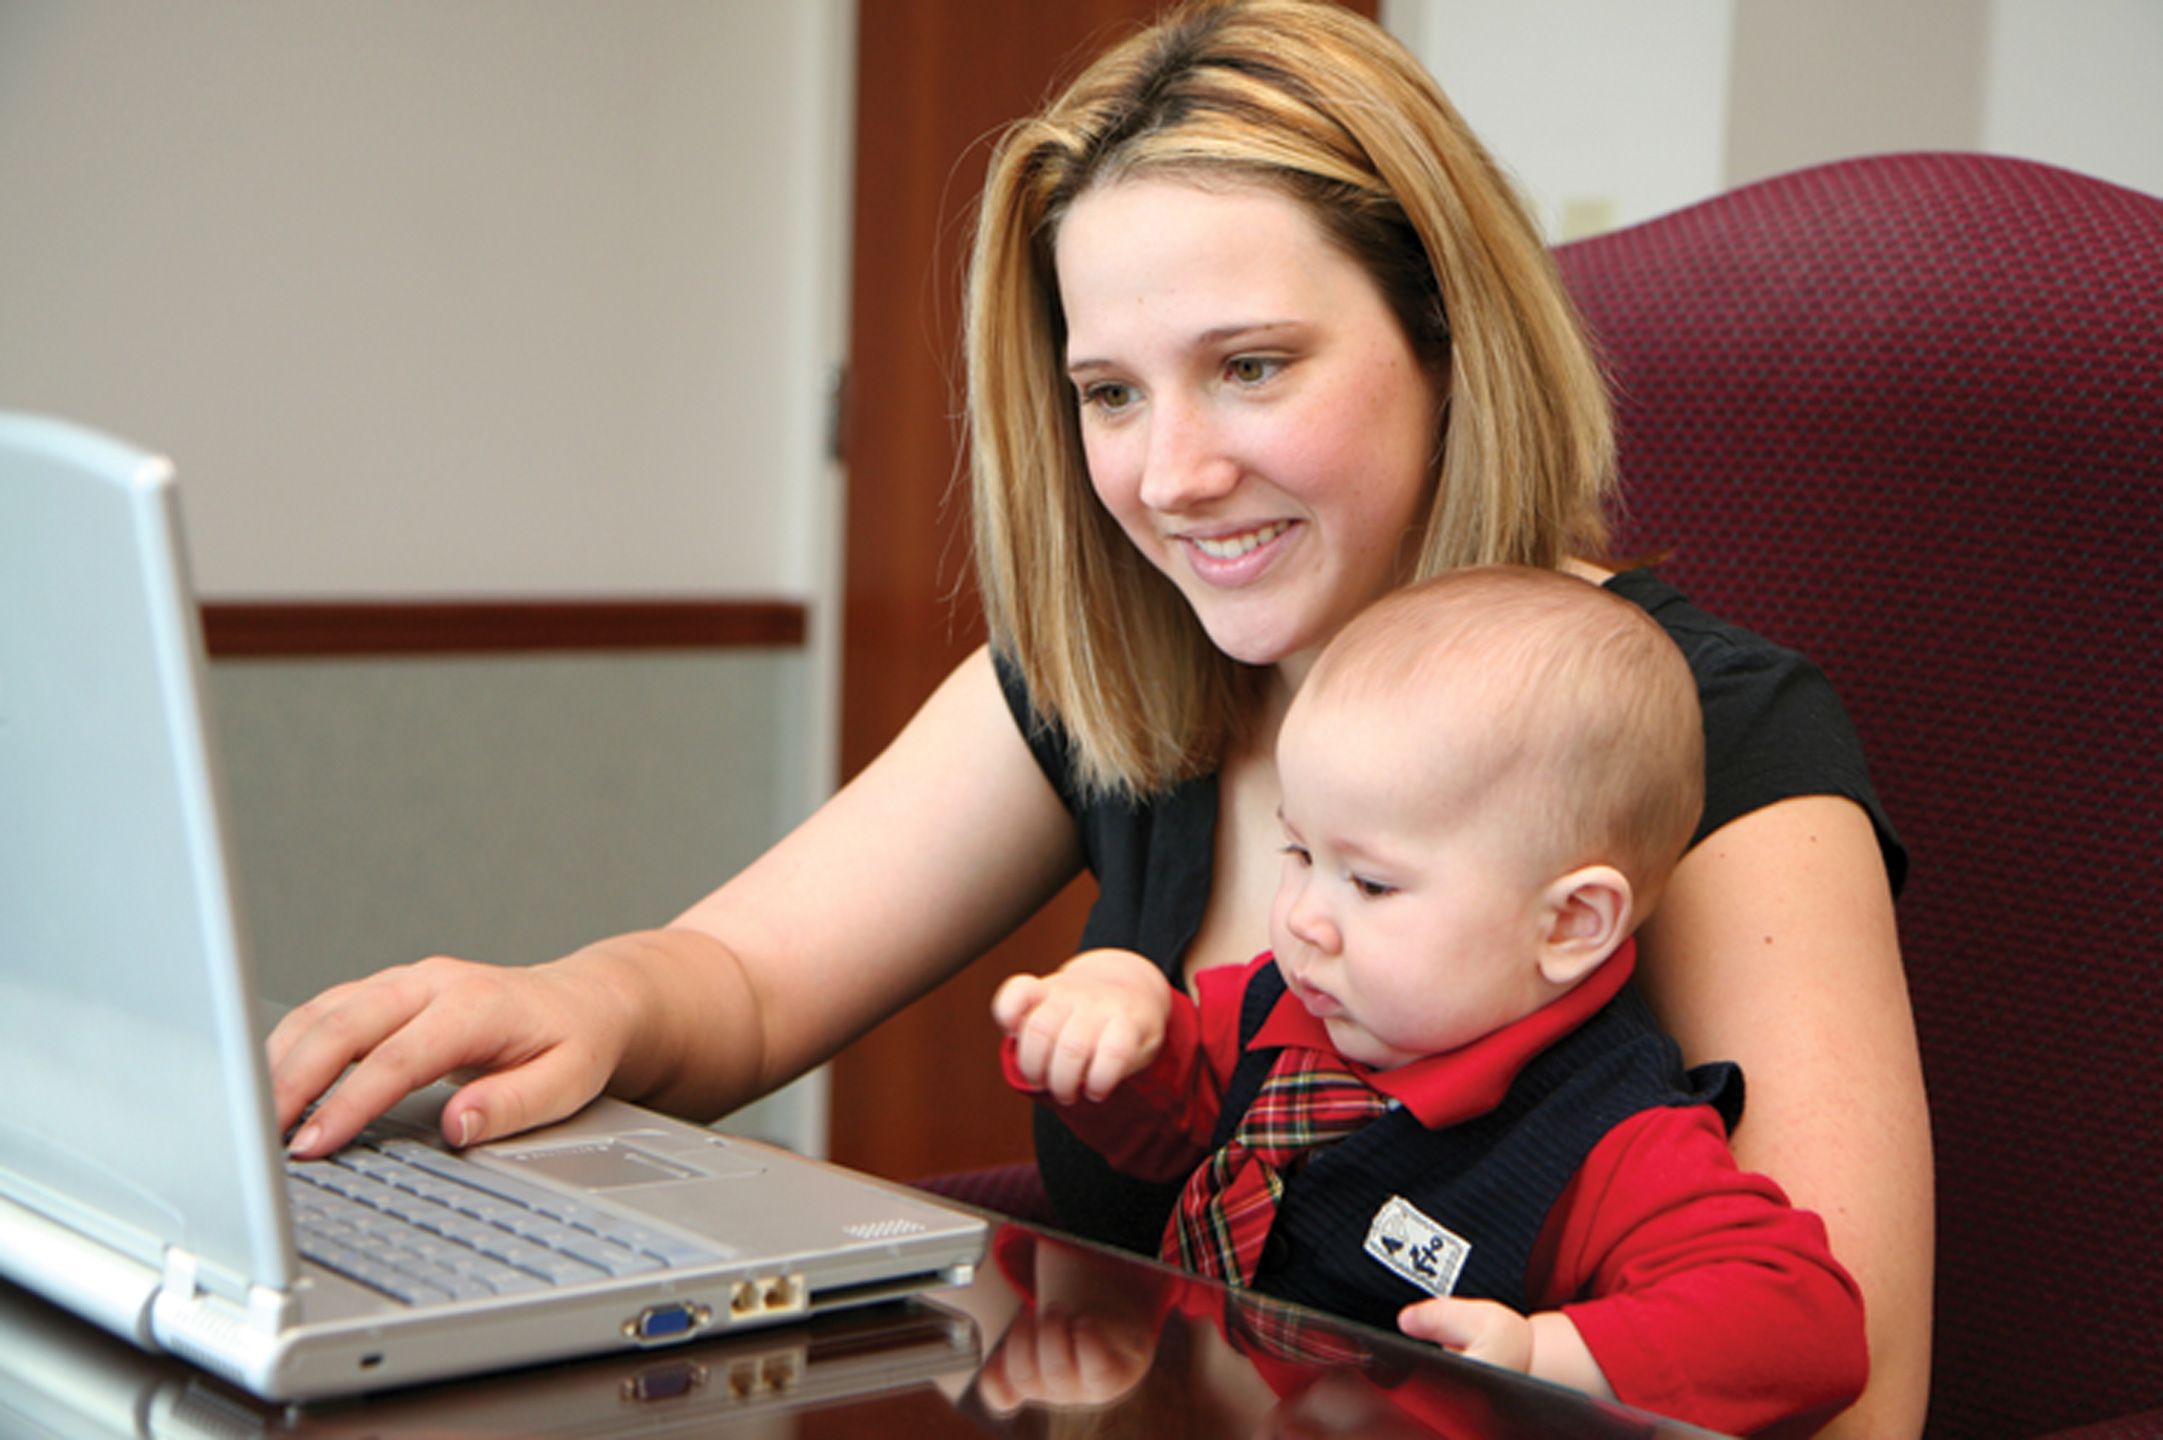 mother-on-laptop-with-baby1440